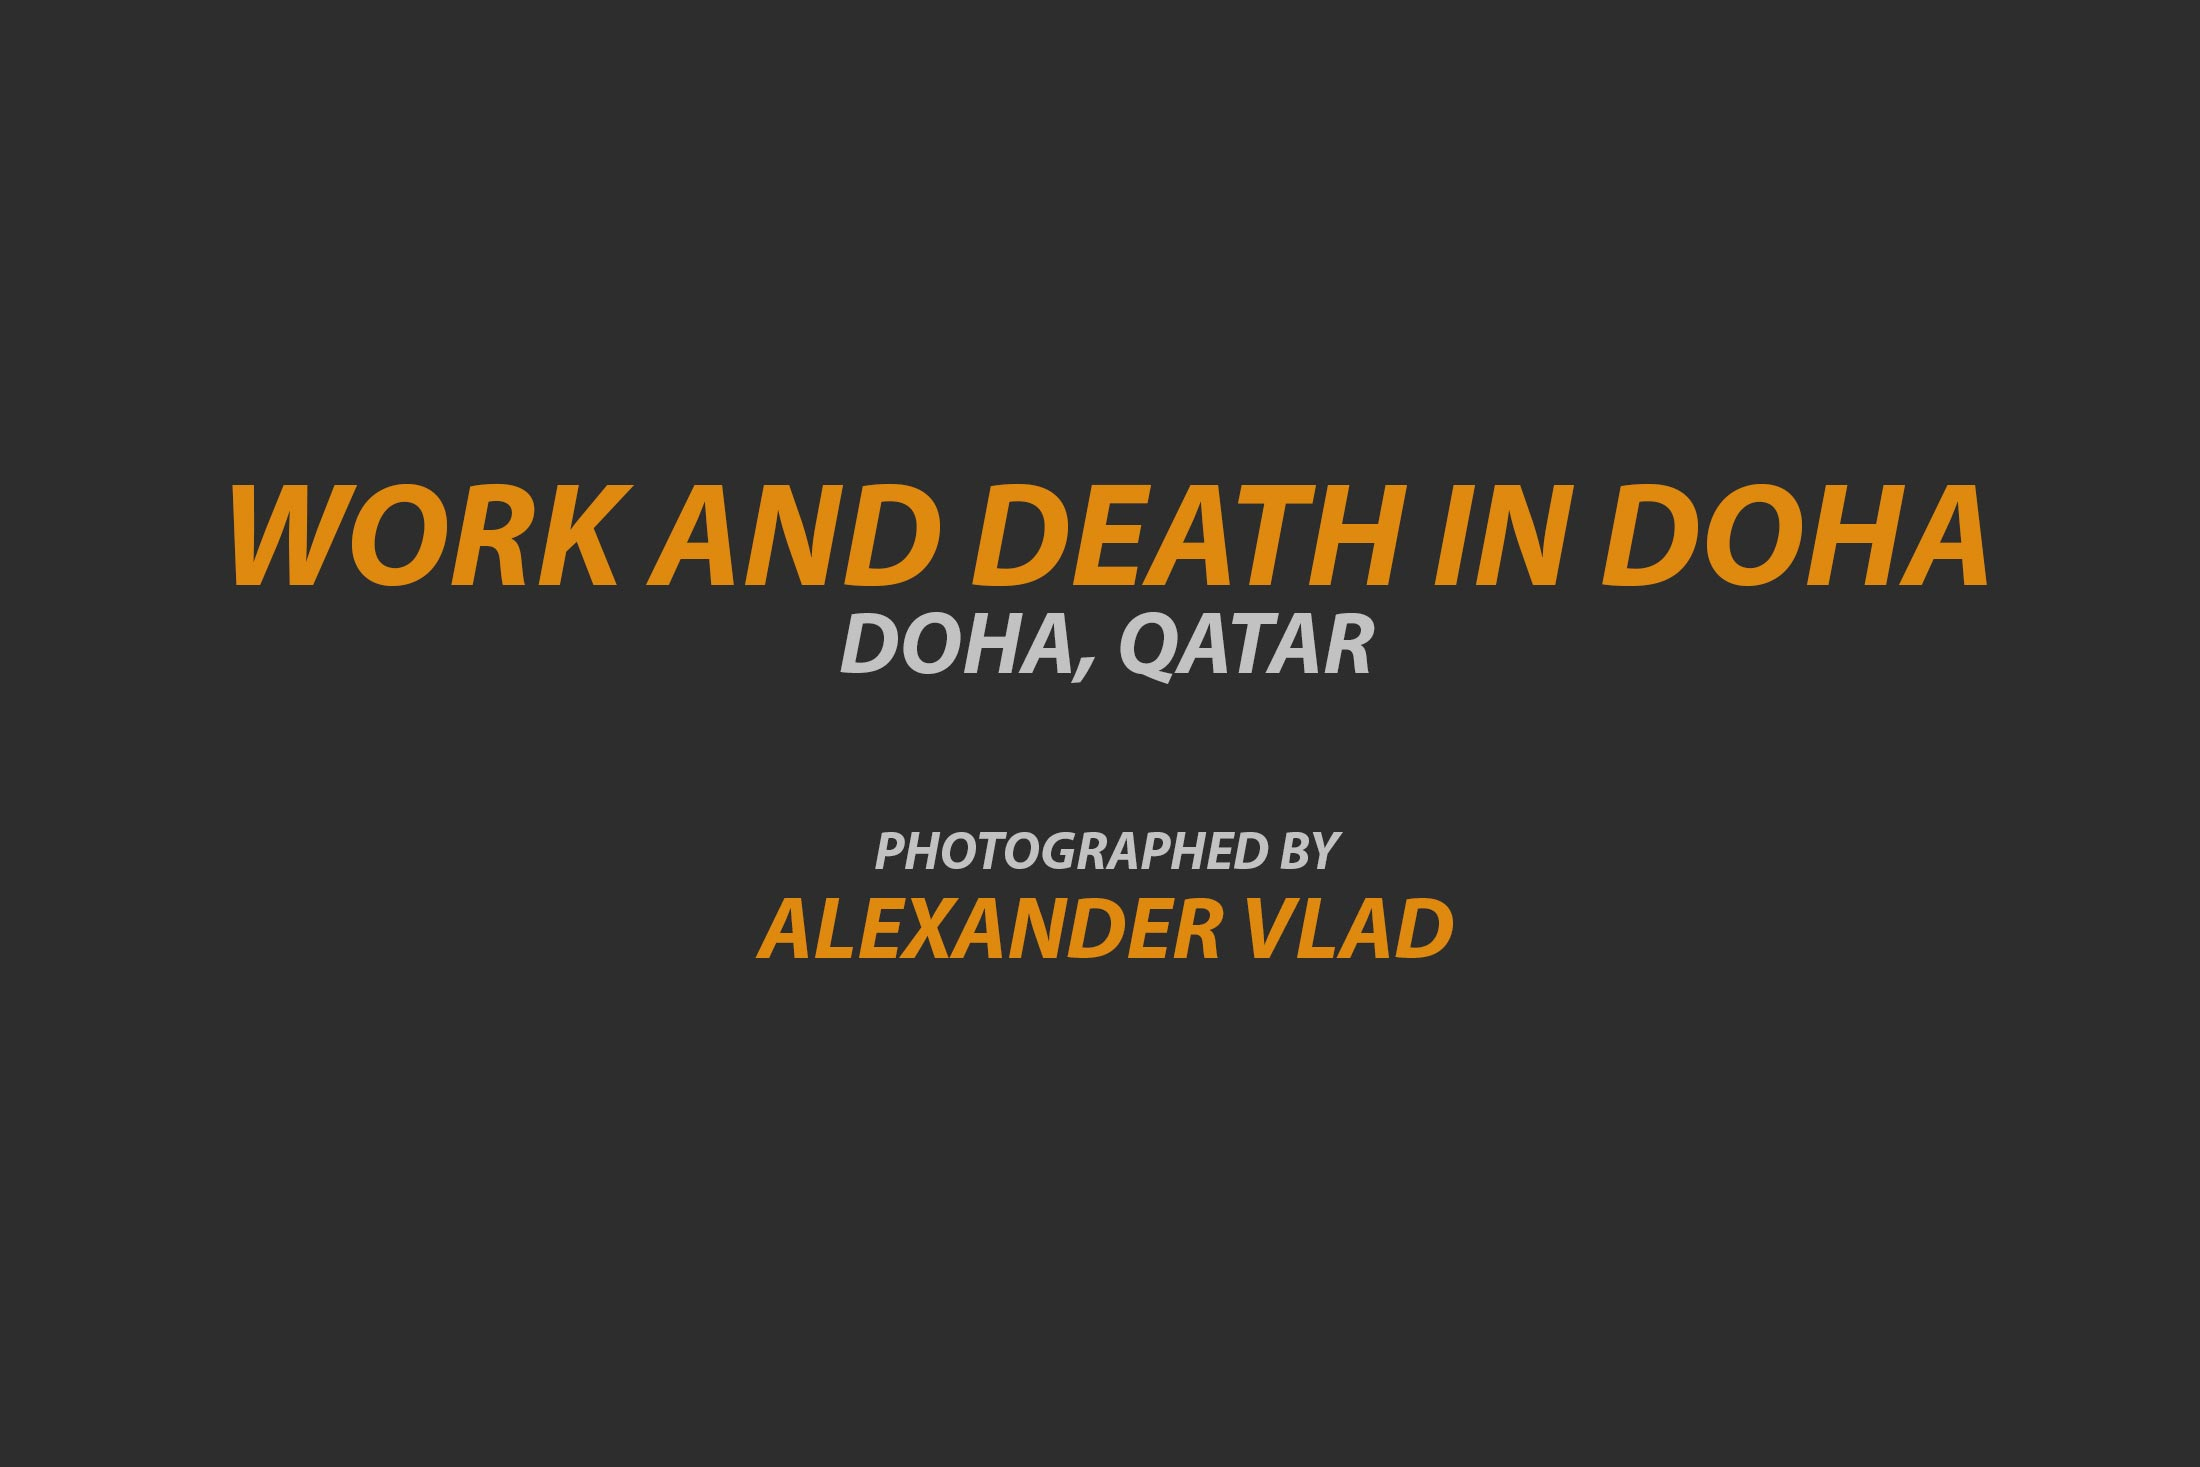 _qatar-workanddeath_01